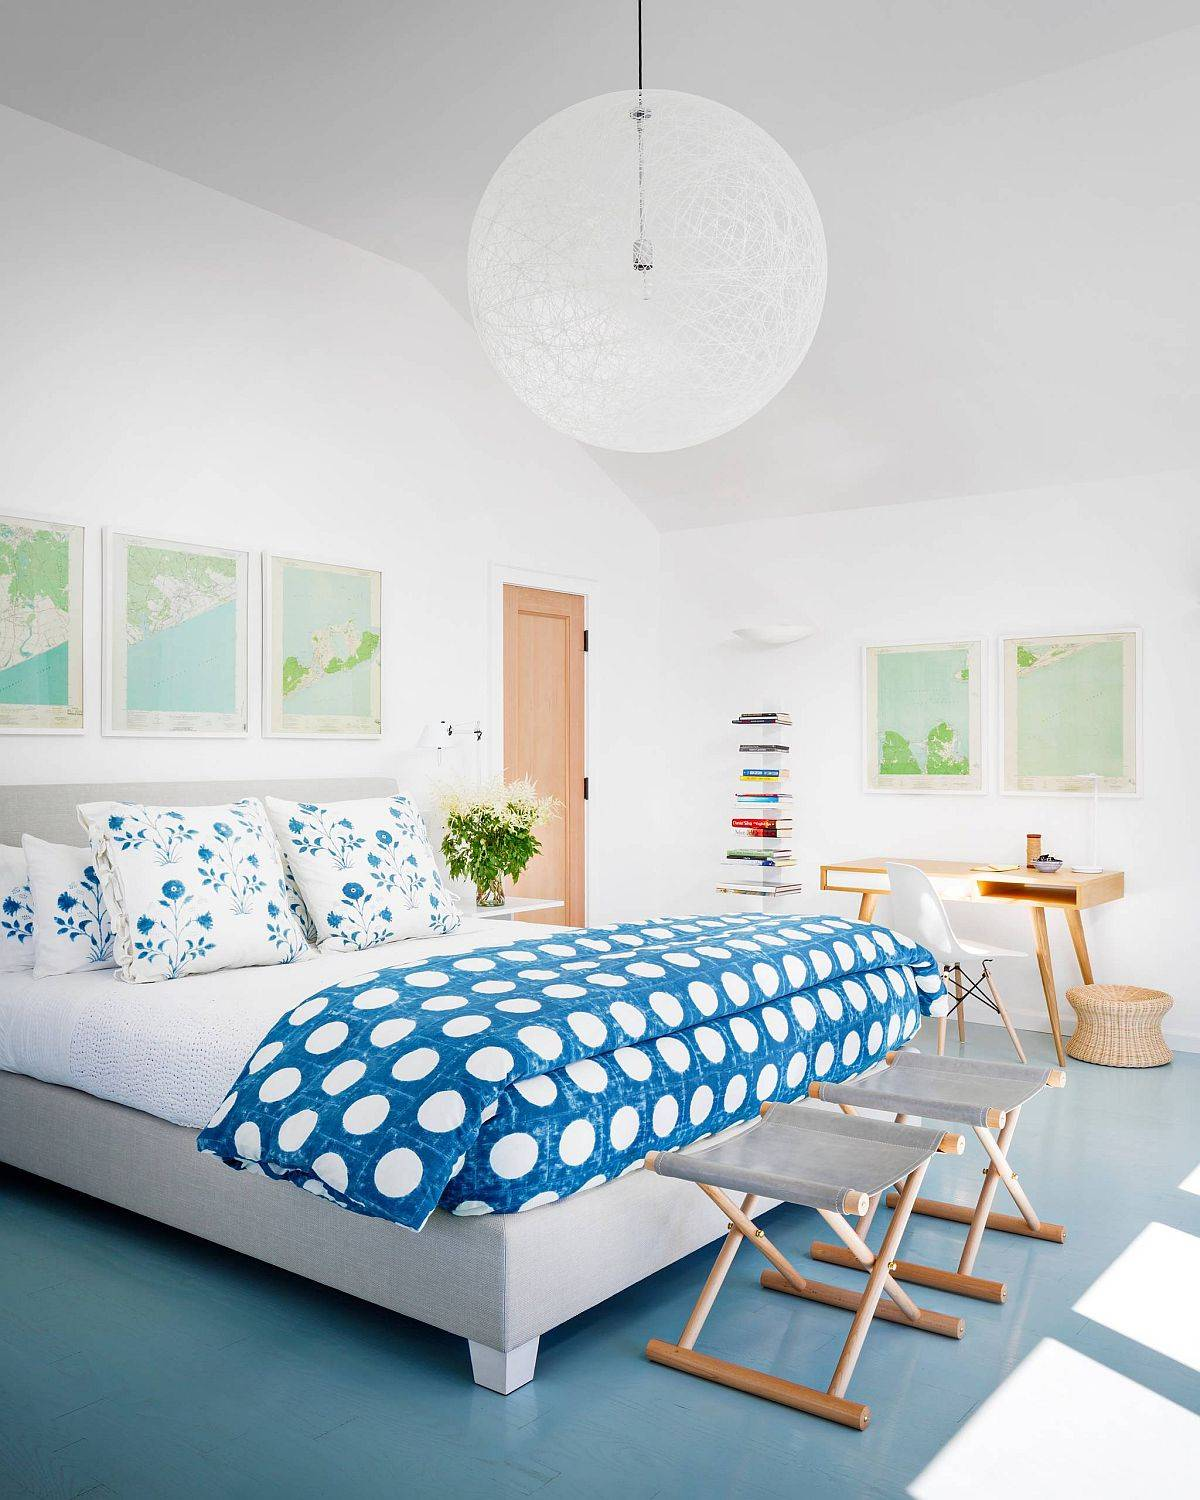 Use-bedding-and-pillow-covers-to-bring-florals-to-the-bedroom-in-an-understated-manner-64634